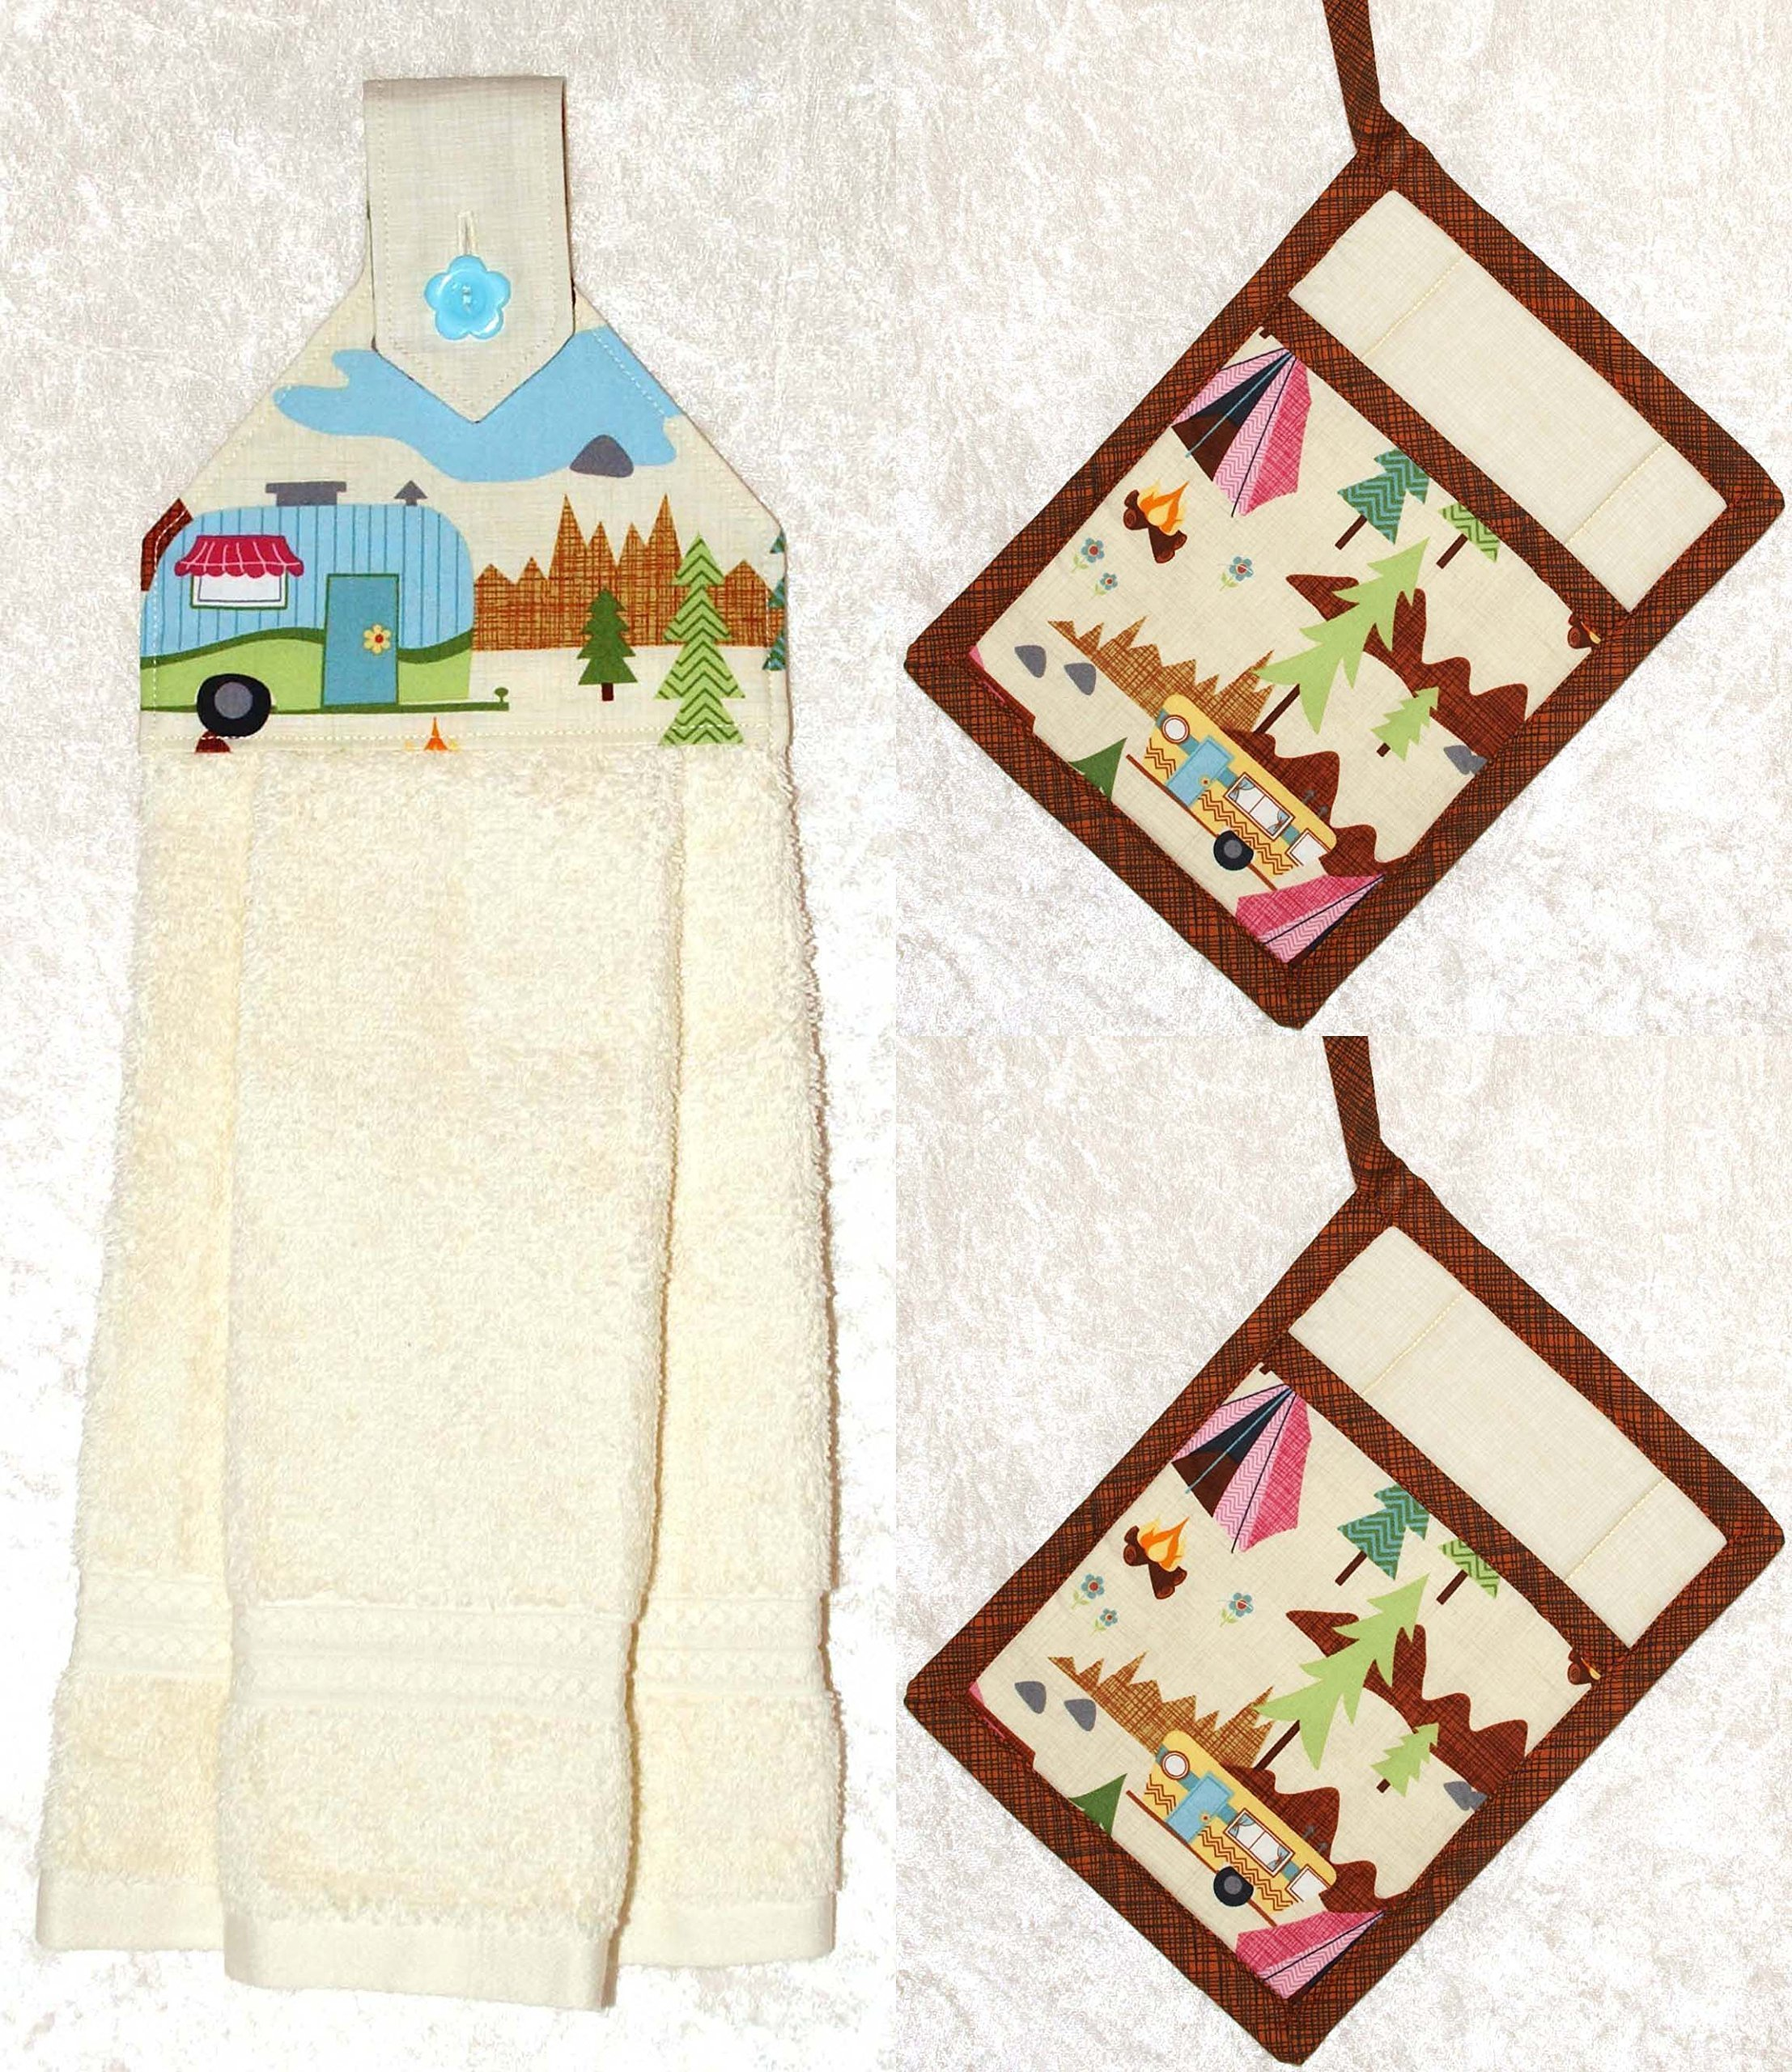 3 Piece Kitchen Set - RV Camping Decor - 1 Hanging Hand Towel - 2 Pocket Potholders - Ivory Plush Towel by Green Acorn Kitchen